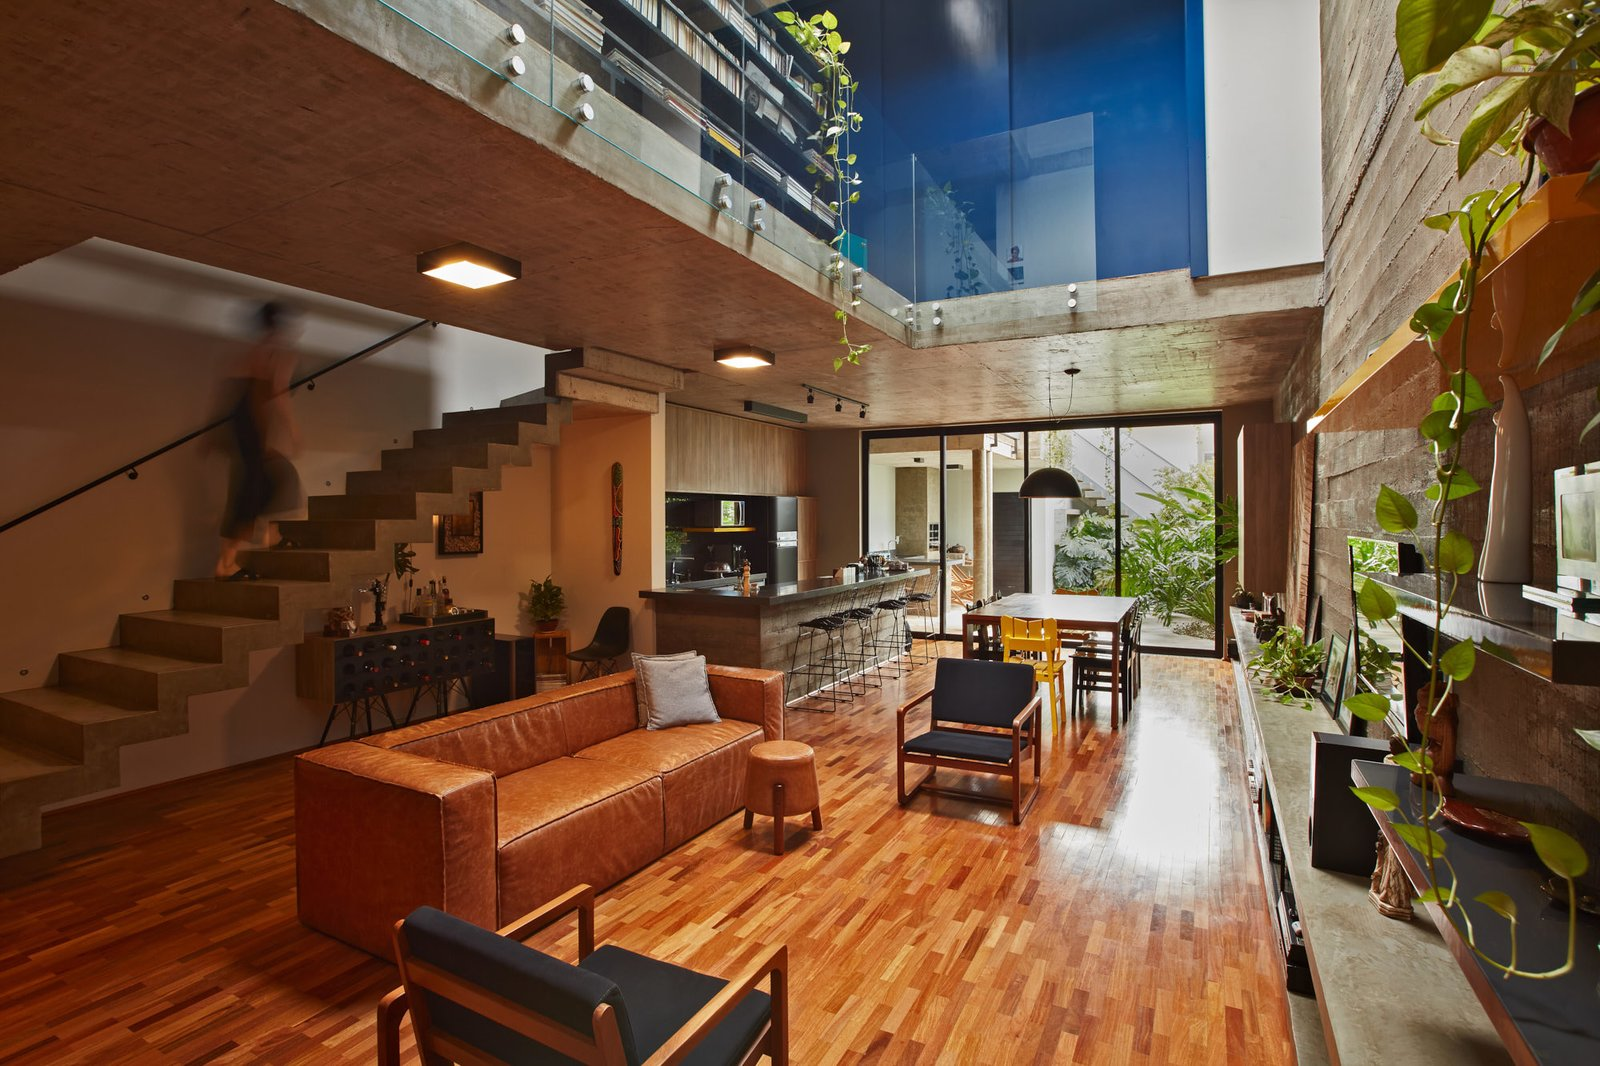 Living Room, Sofa, Chair, Stools, Ceiling Lighting, Medium Hardwood Floor, Pendant Lighting, and Shelves Stairs lead up to the upper level.  Photo 2 of 14 in This Slender Concrete Home in Brazil Feels Like an Urban Jungle